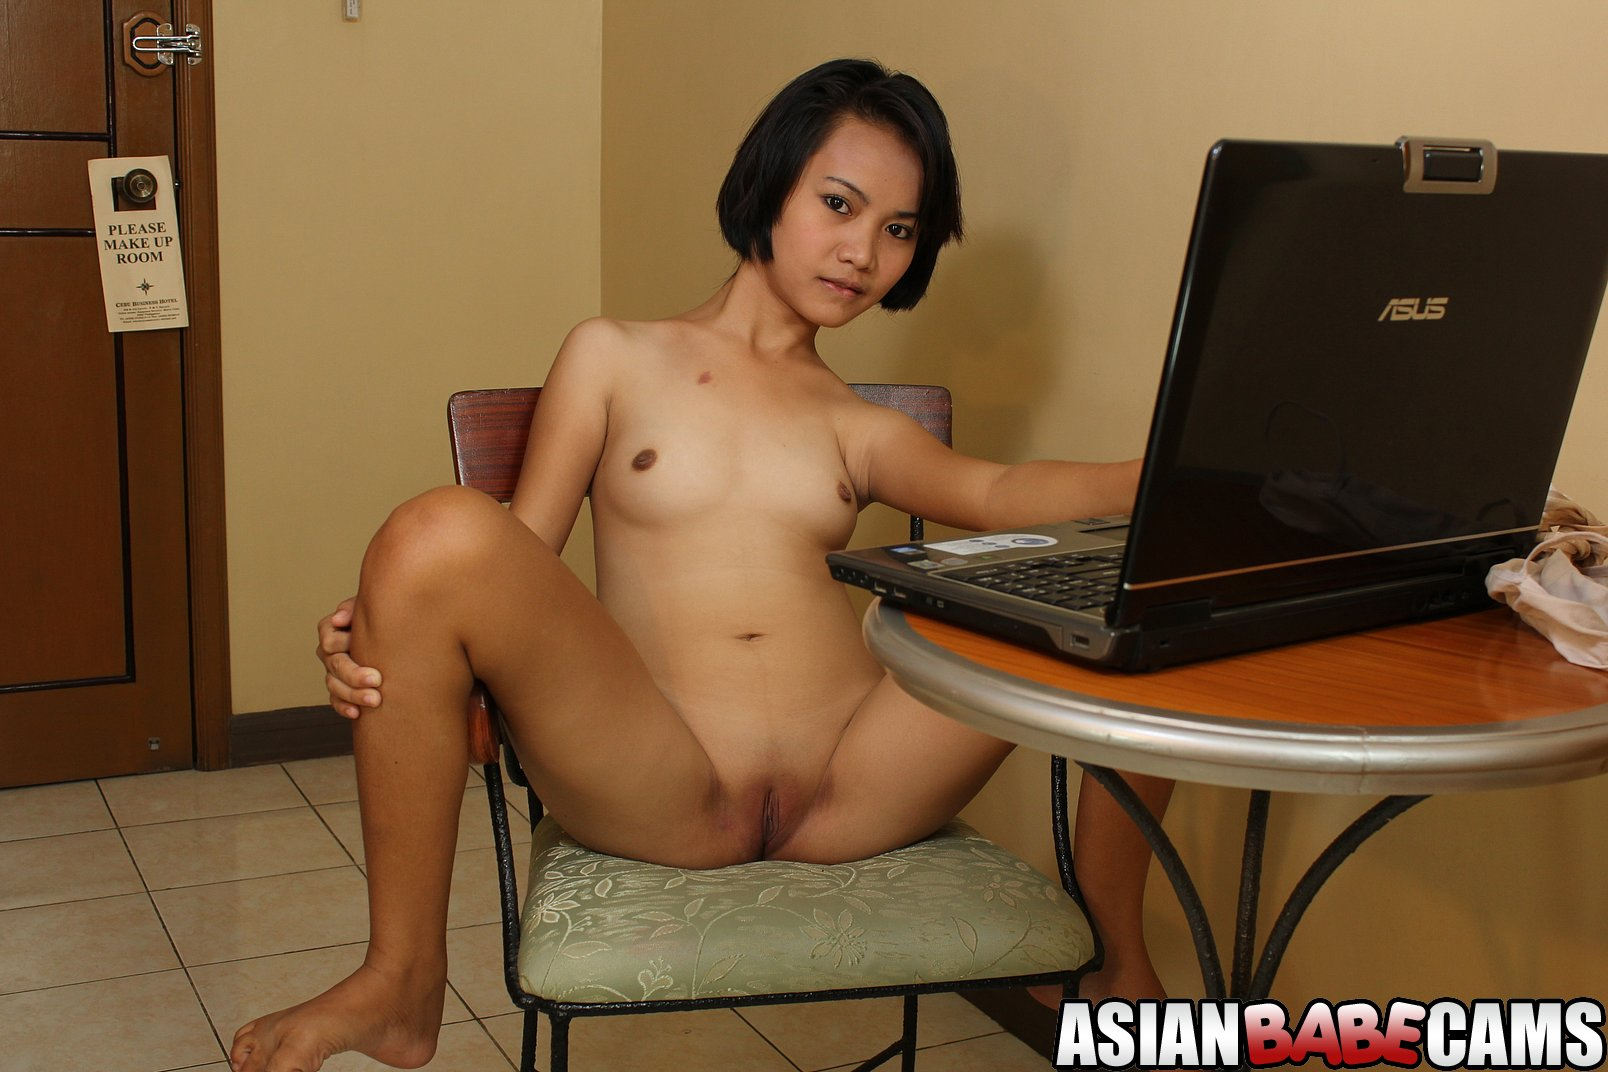 asian nude webcams